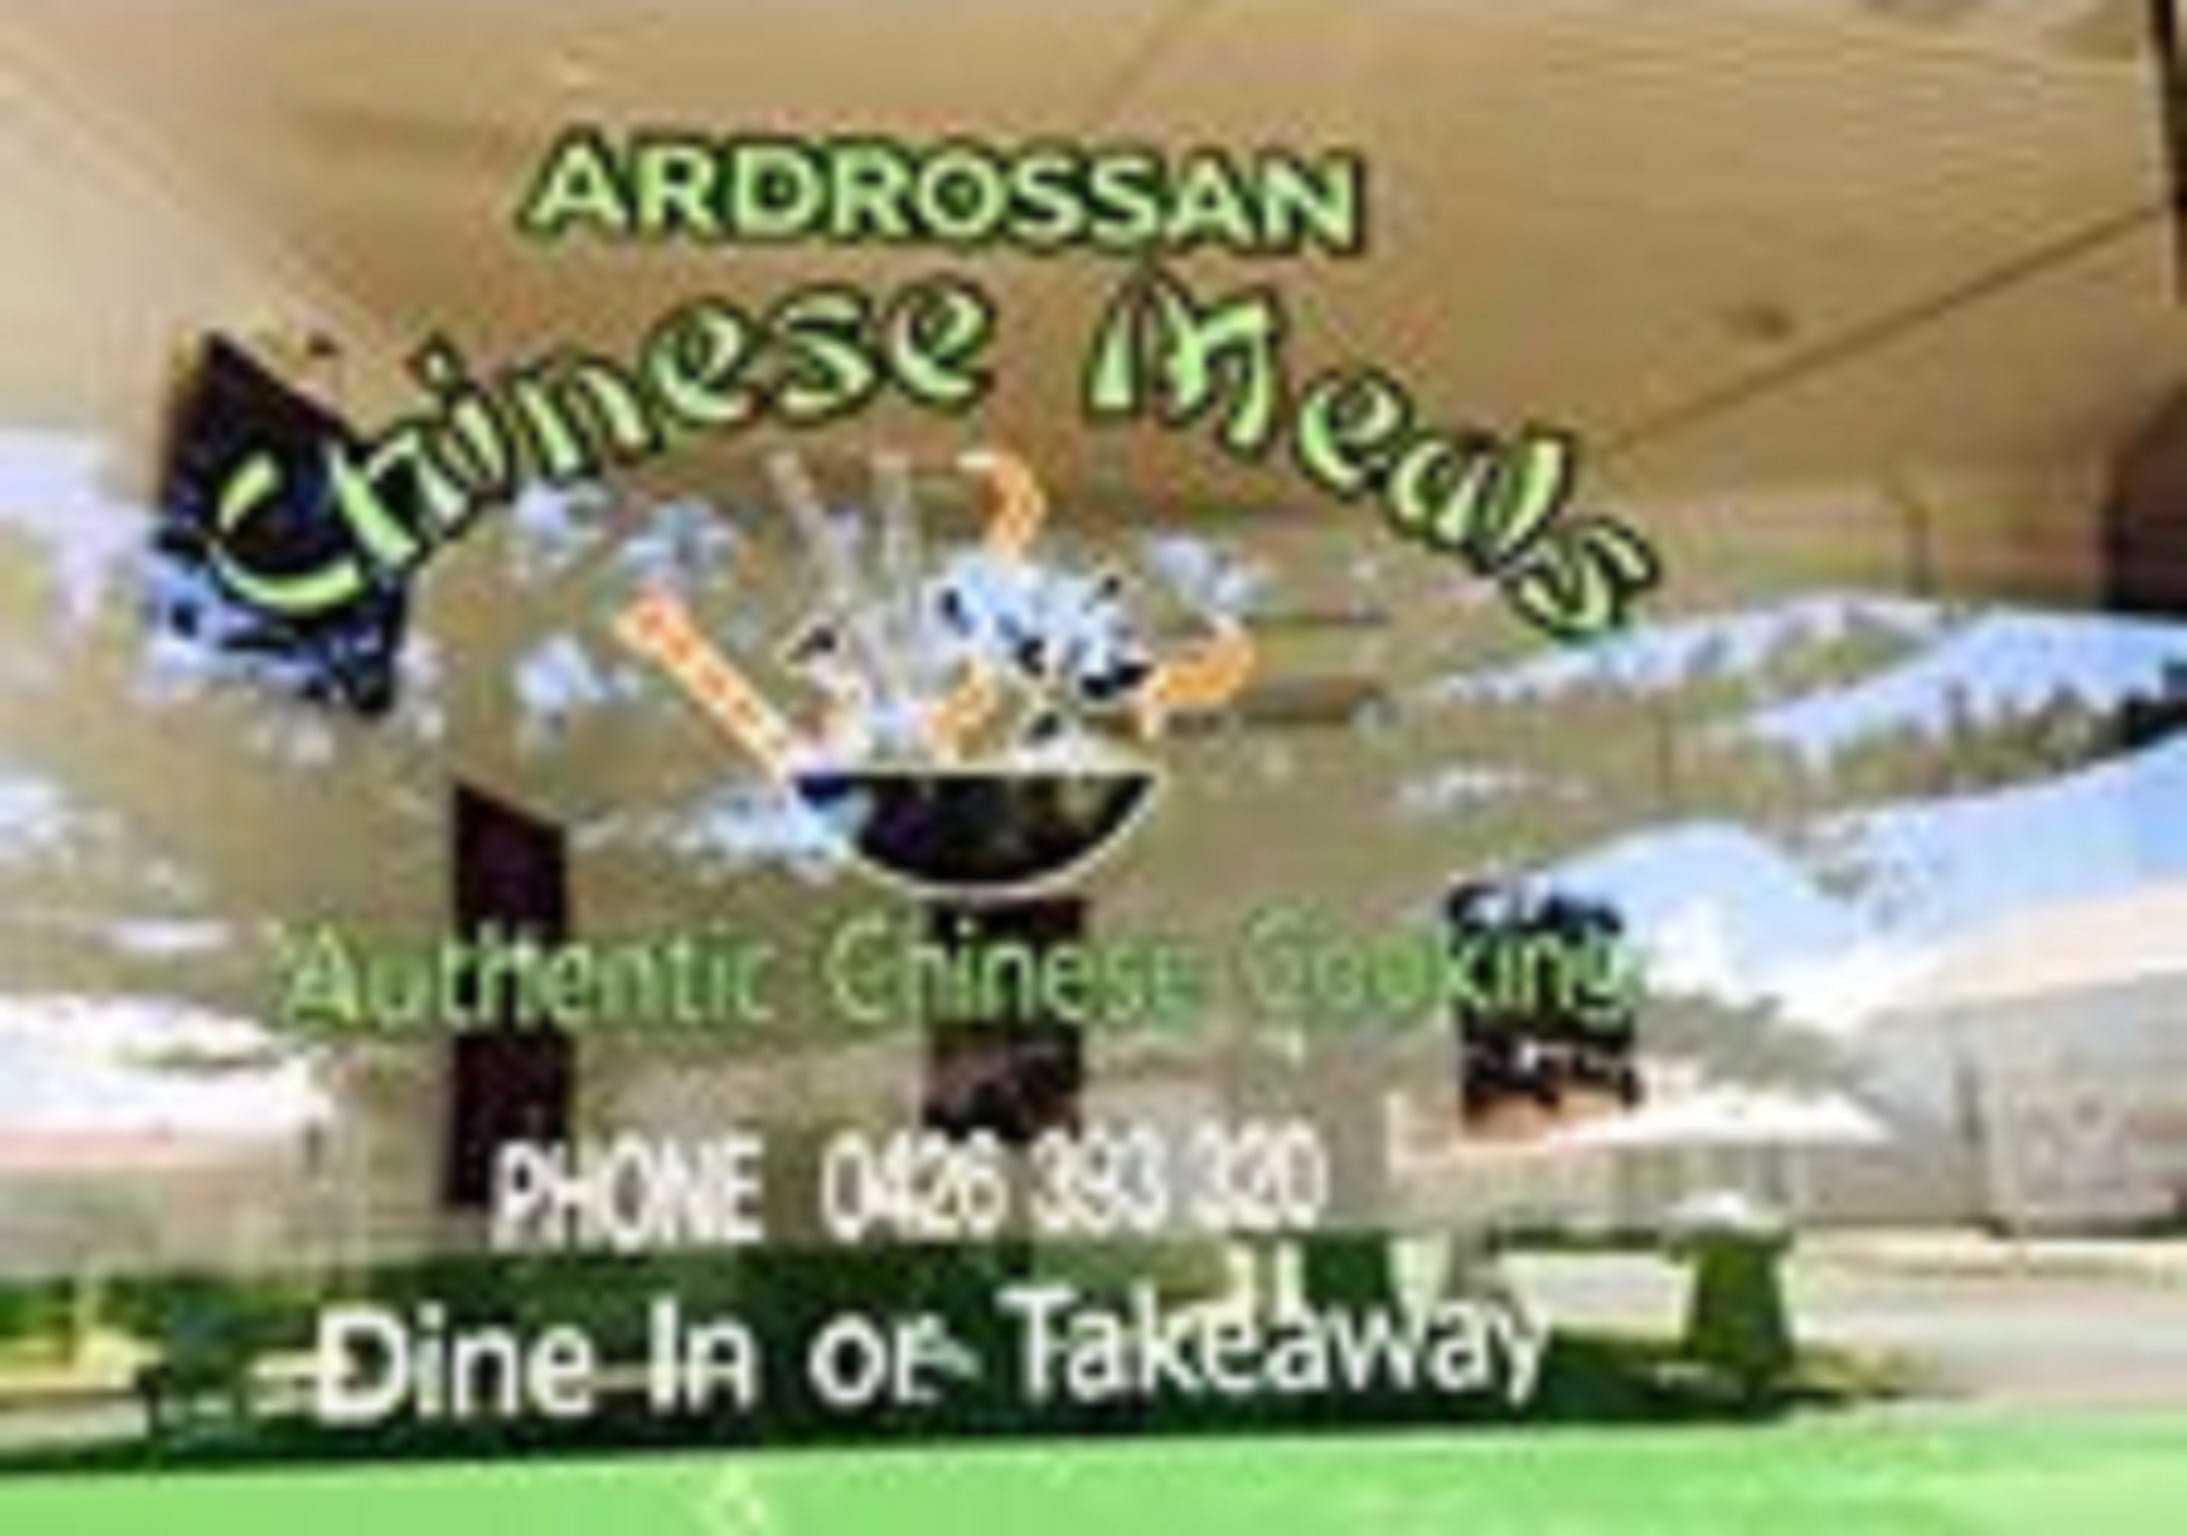 Ardrossan ChineseMeals - South Australia Travel